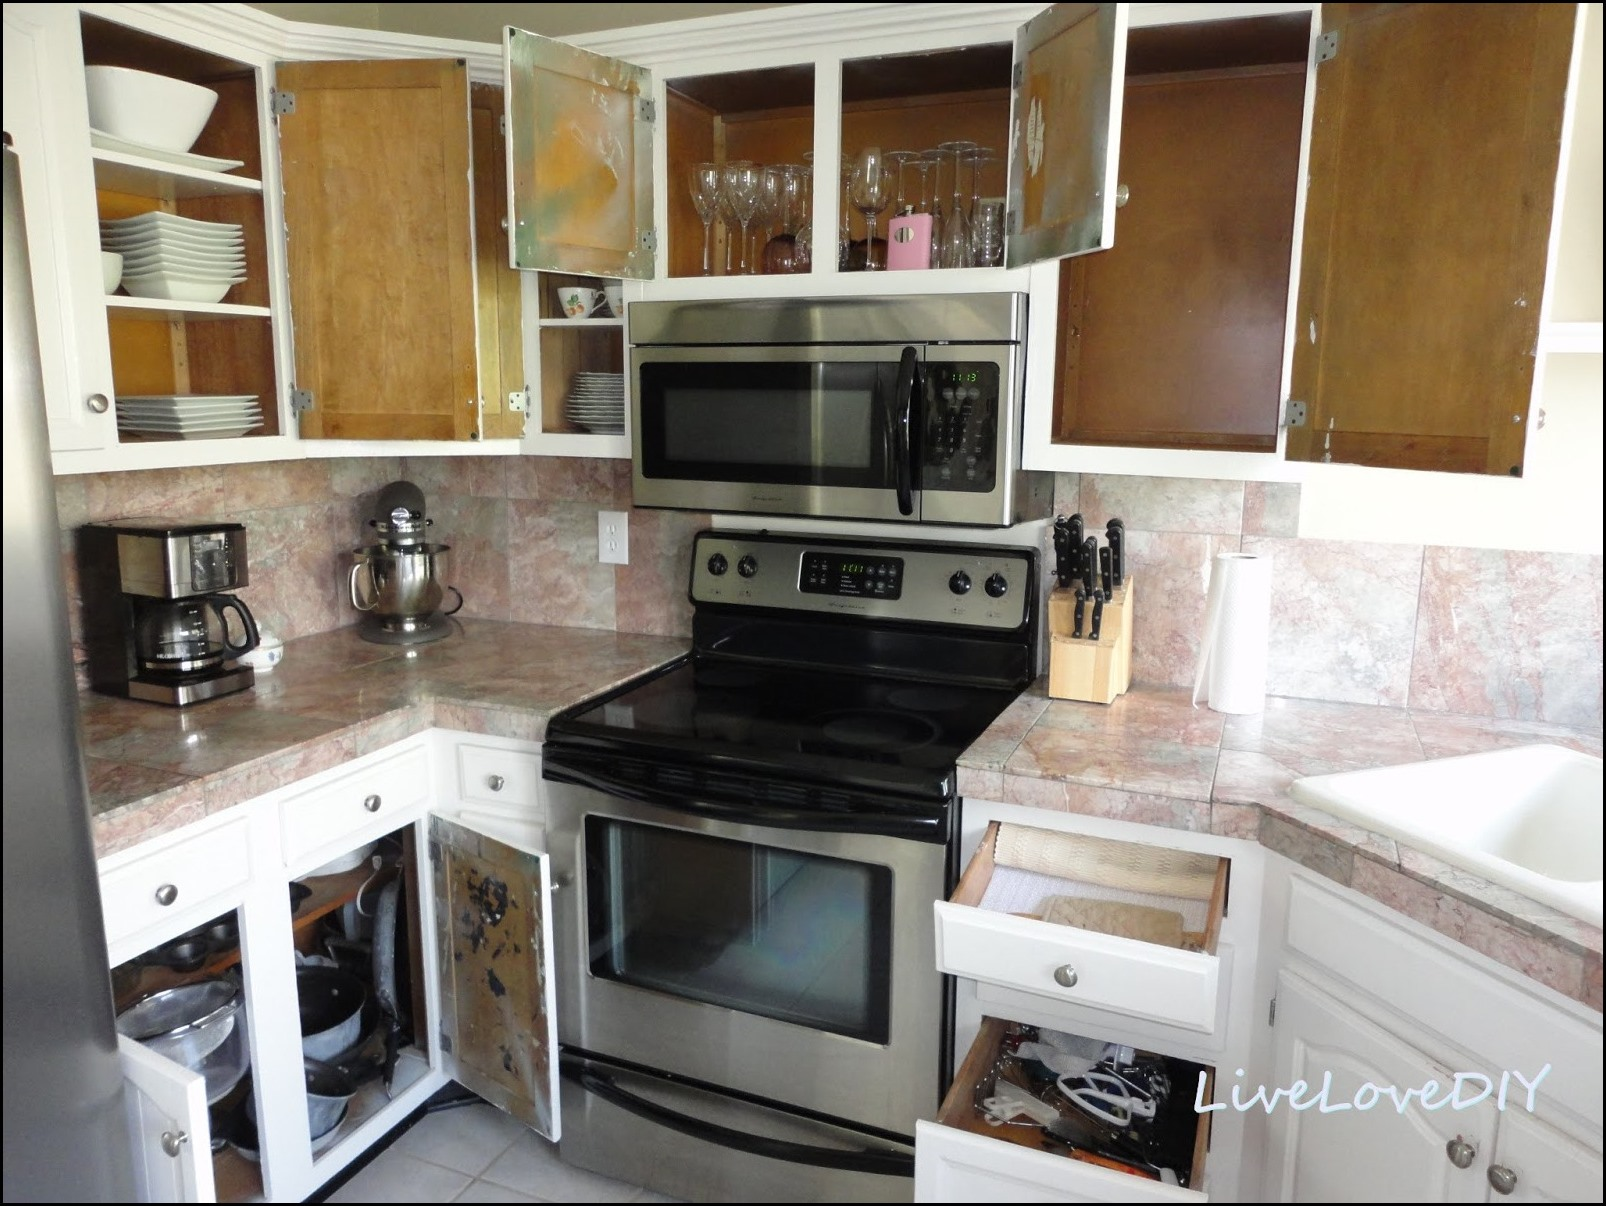 Merveilleux Should I Paint The Inside Of My Kitchen Cabinets 4